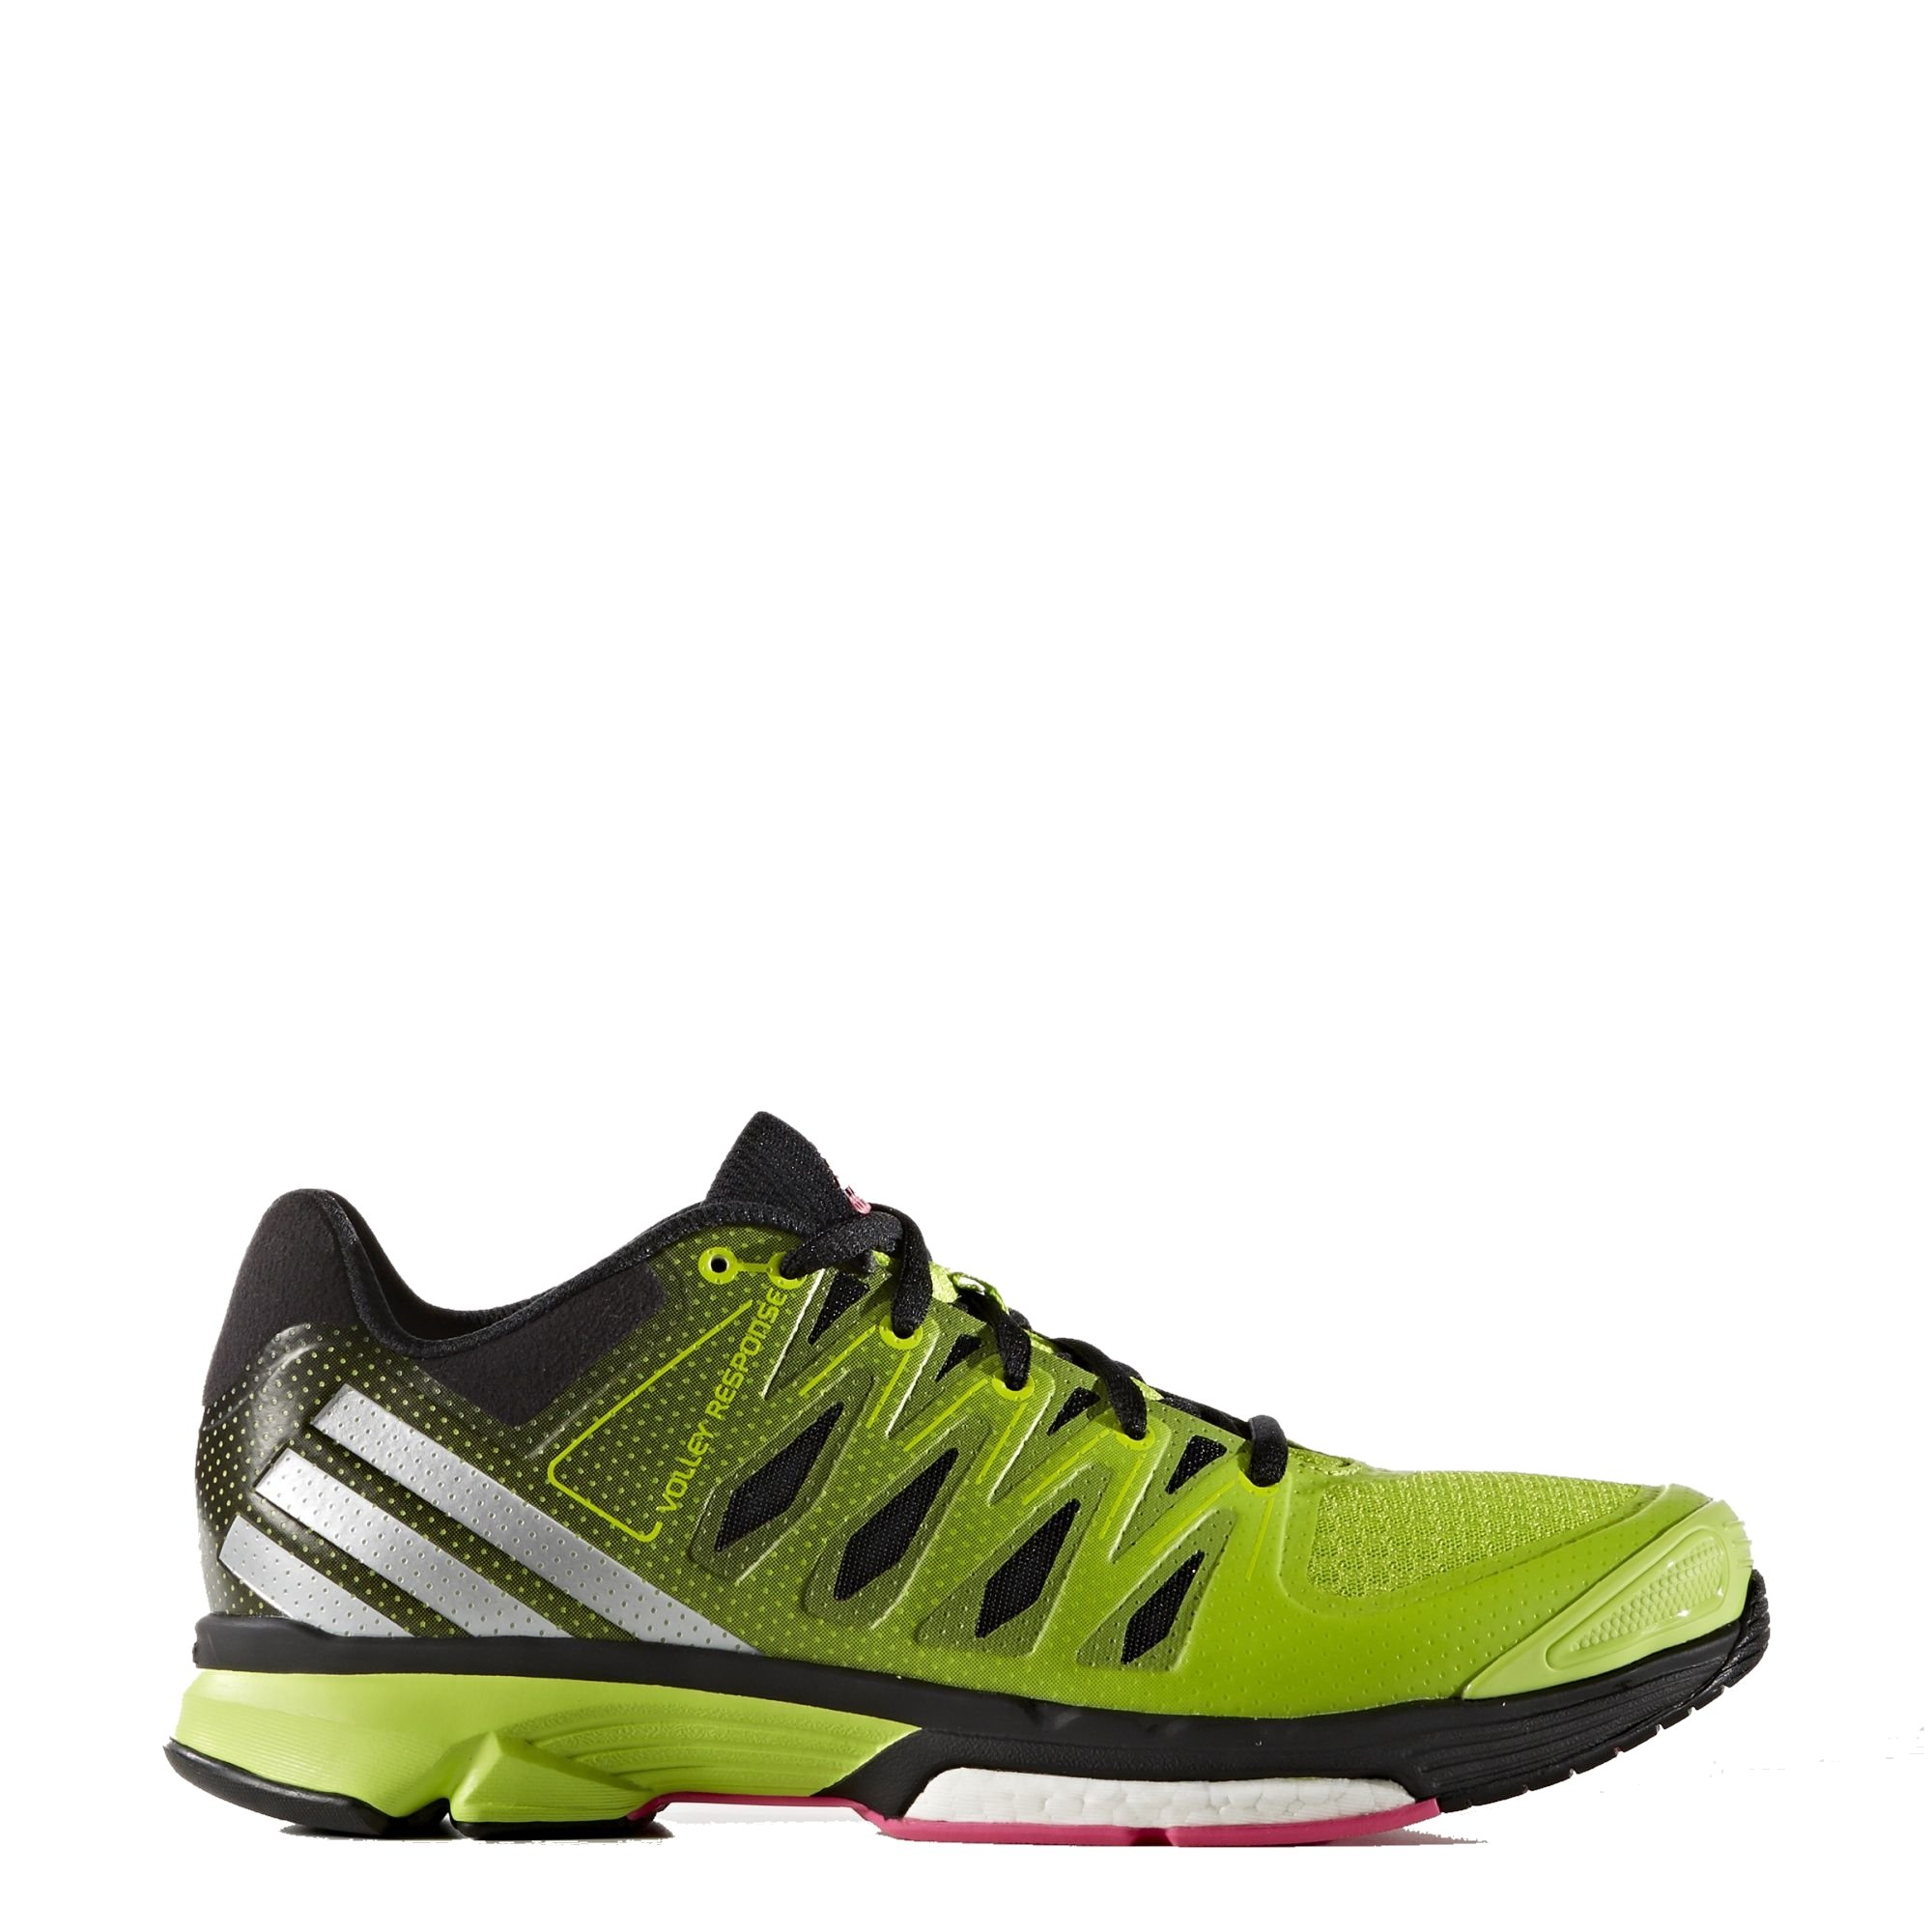 ADIDAS VOLLEY RESPONSE 2 BOOST W